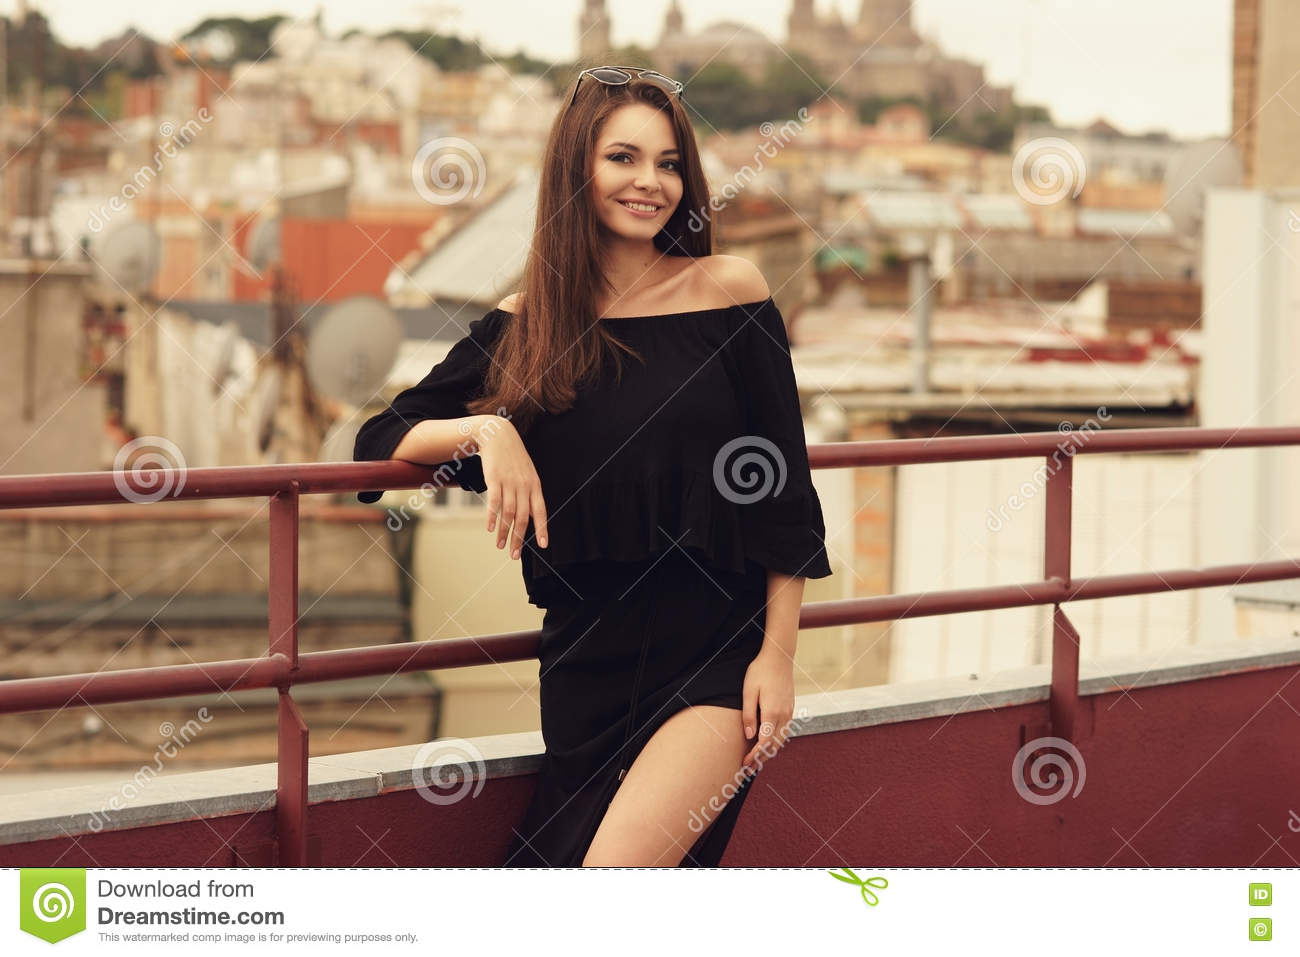 1261bea3b Stylish Girl In Black Clothes Stock Photo - Image of beauty ...